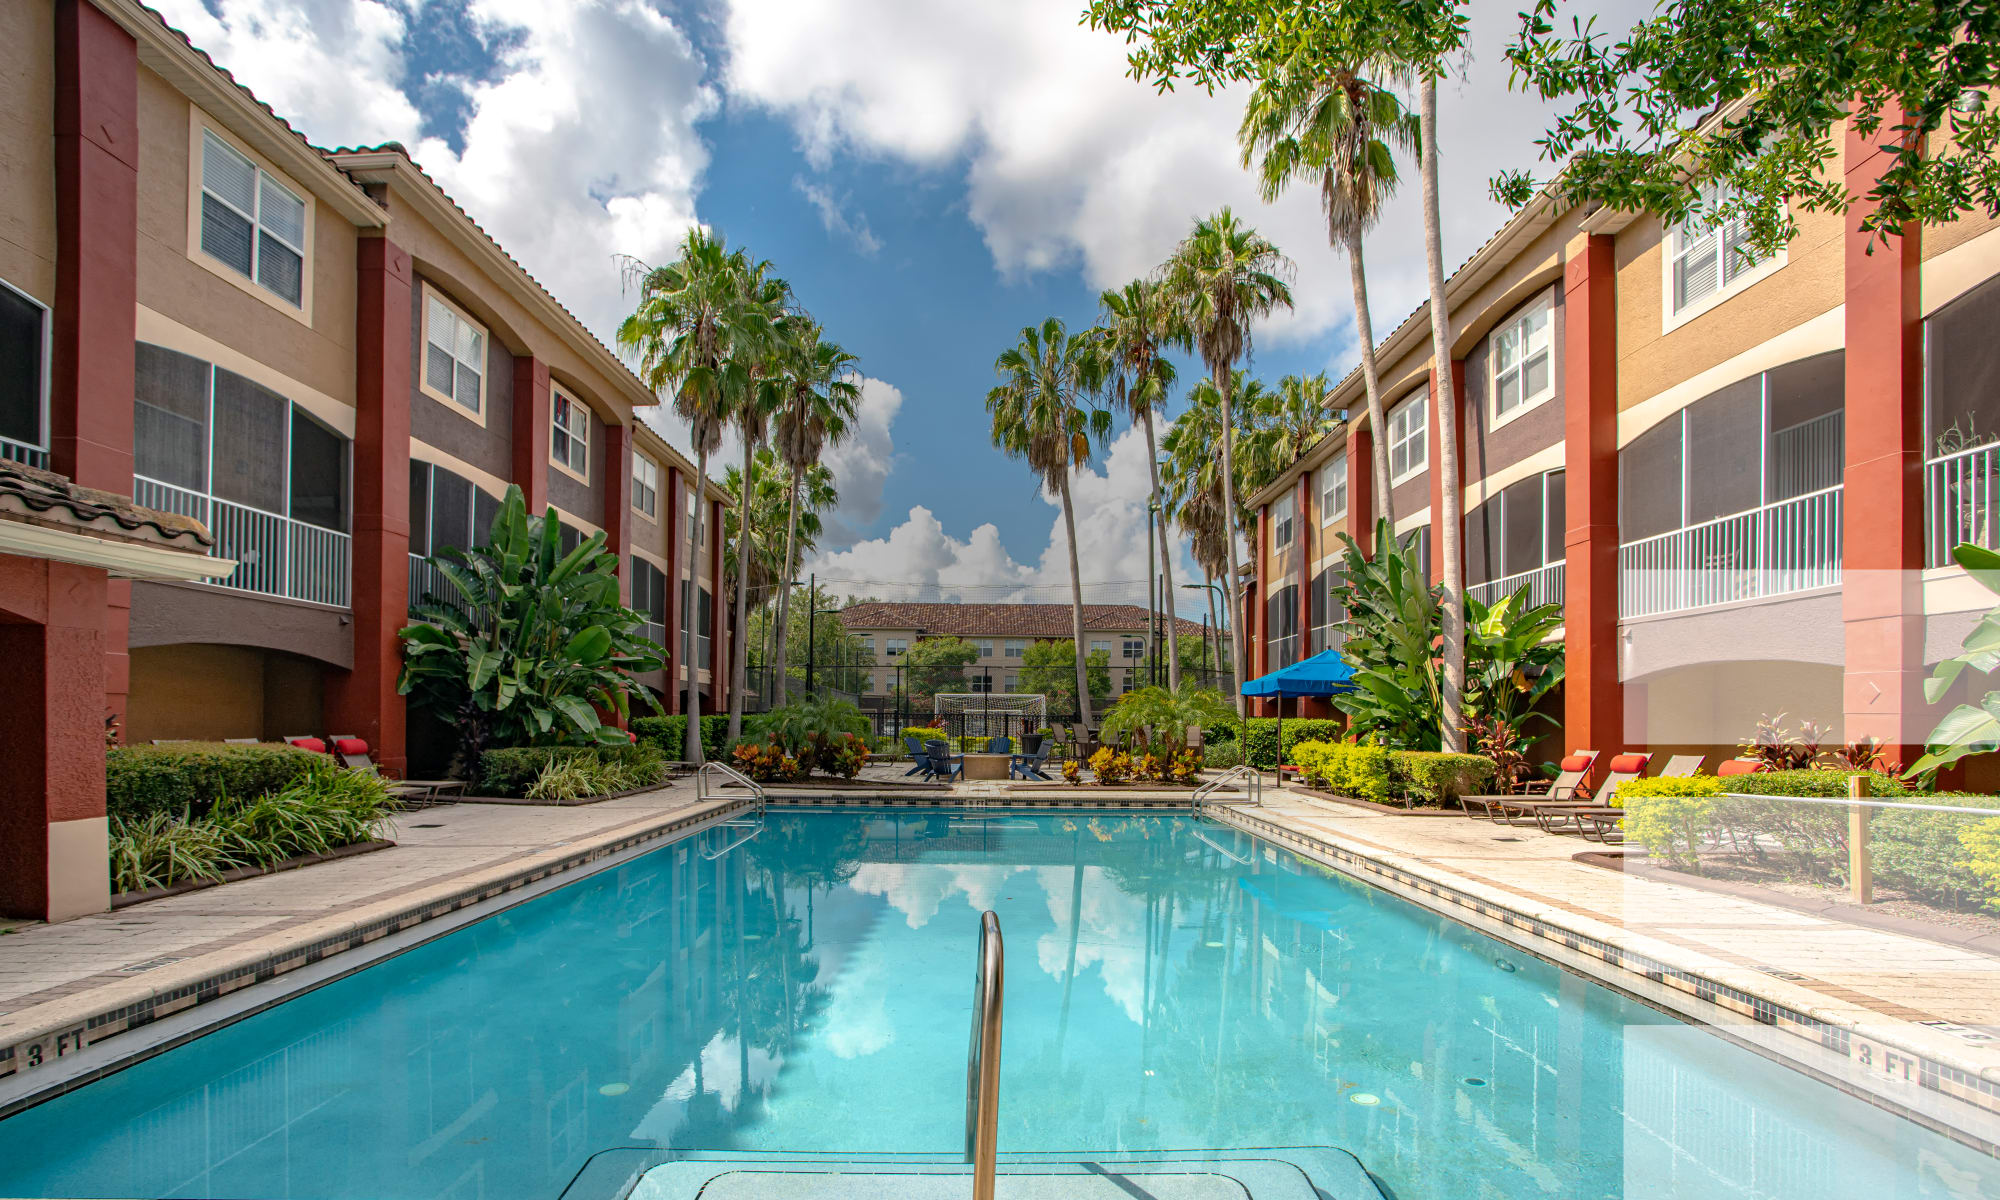 apartments in florida that does require background check